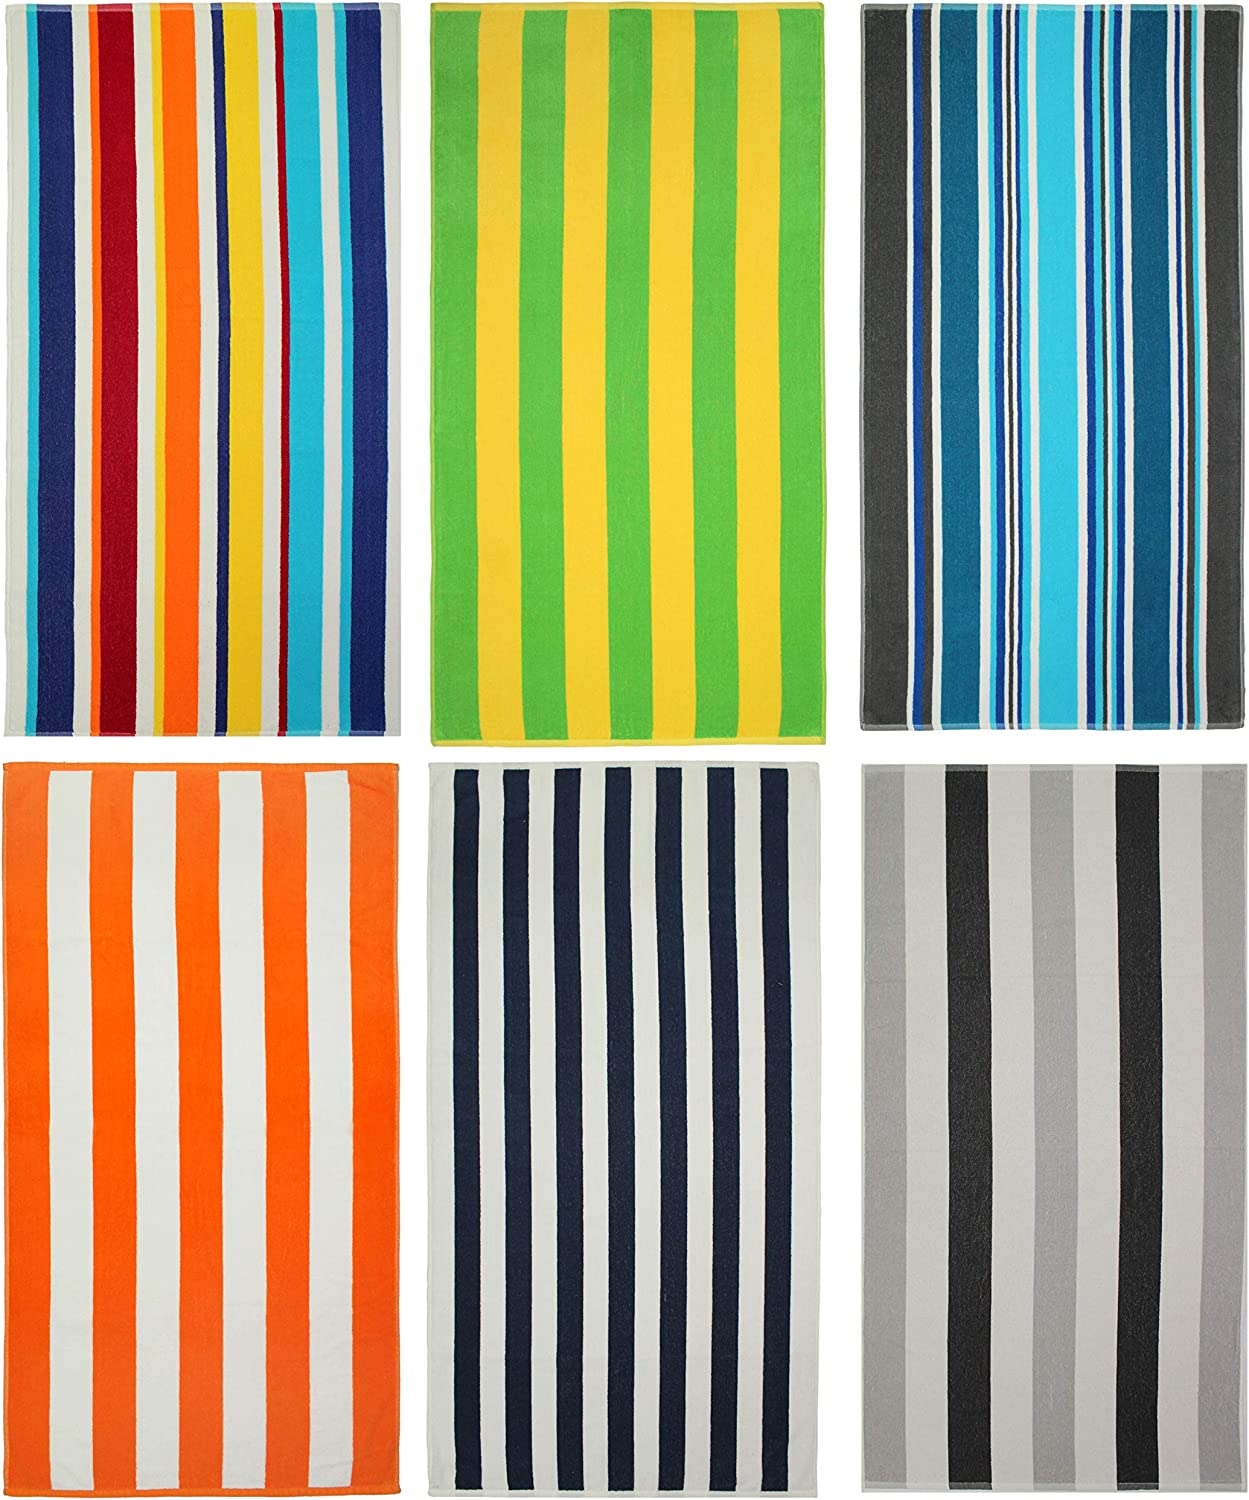 COTTON CRAFT Seaside Set of 6 Cotton Terry Beach and Pool Towels